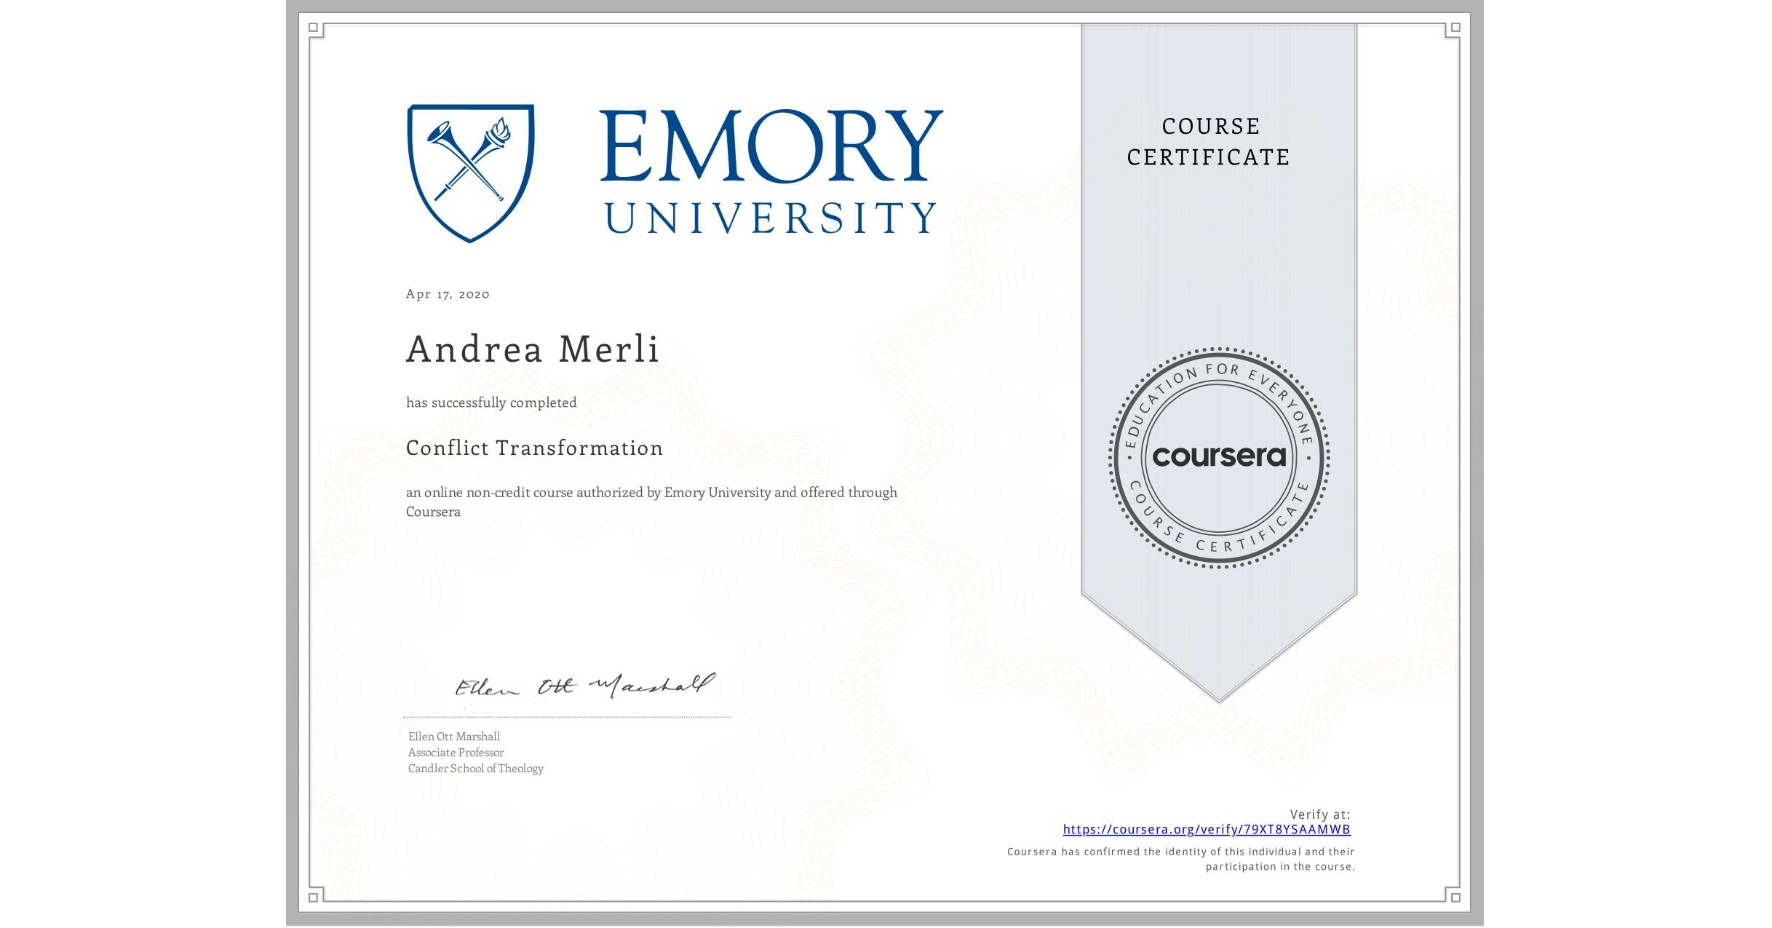 View certificate for Andrea Merli, Conflict Transformation, an online non-credit course authorized by Emory University and offered through Coursera